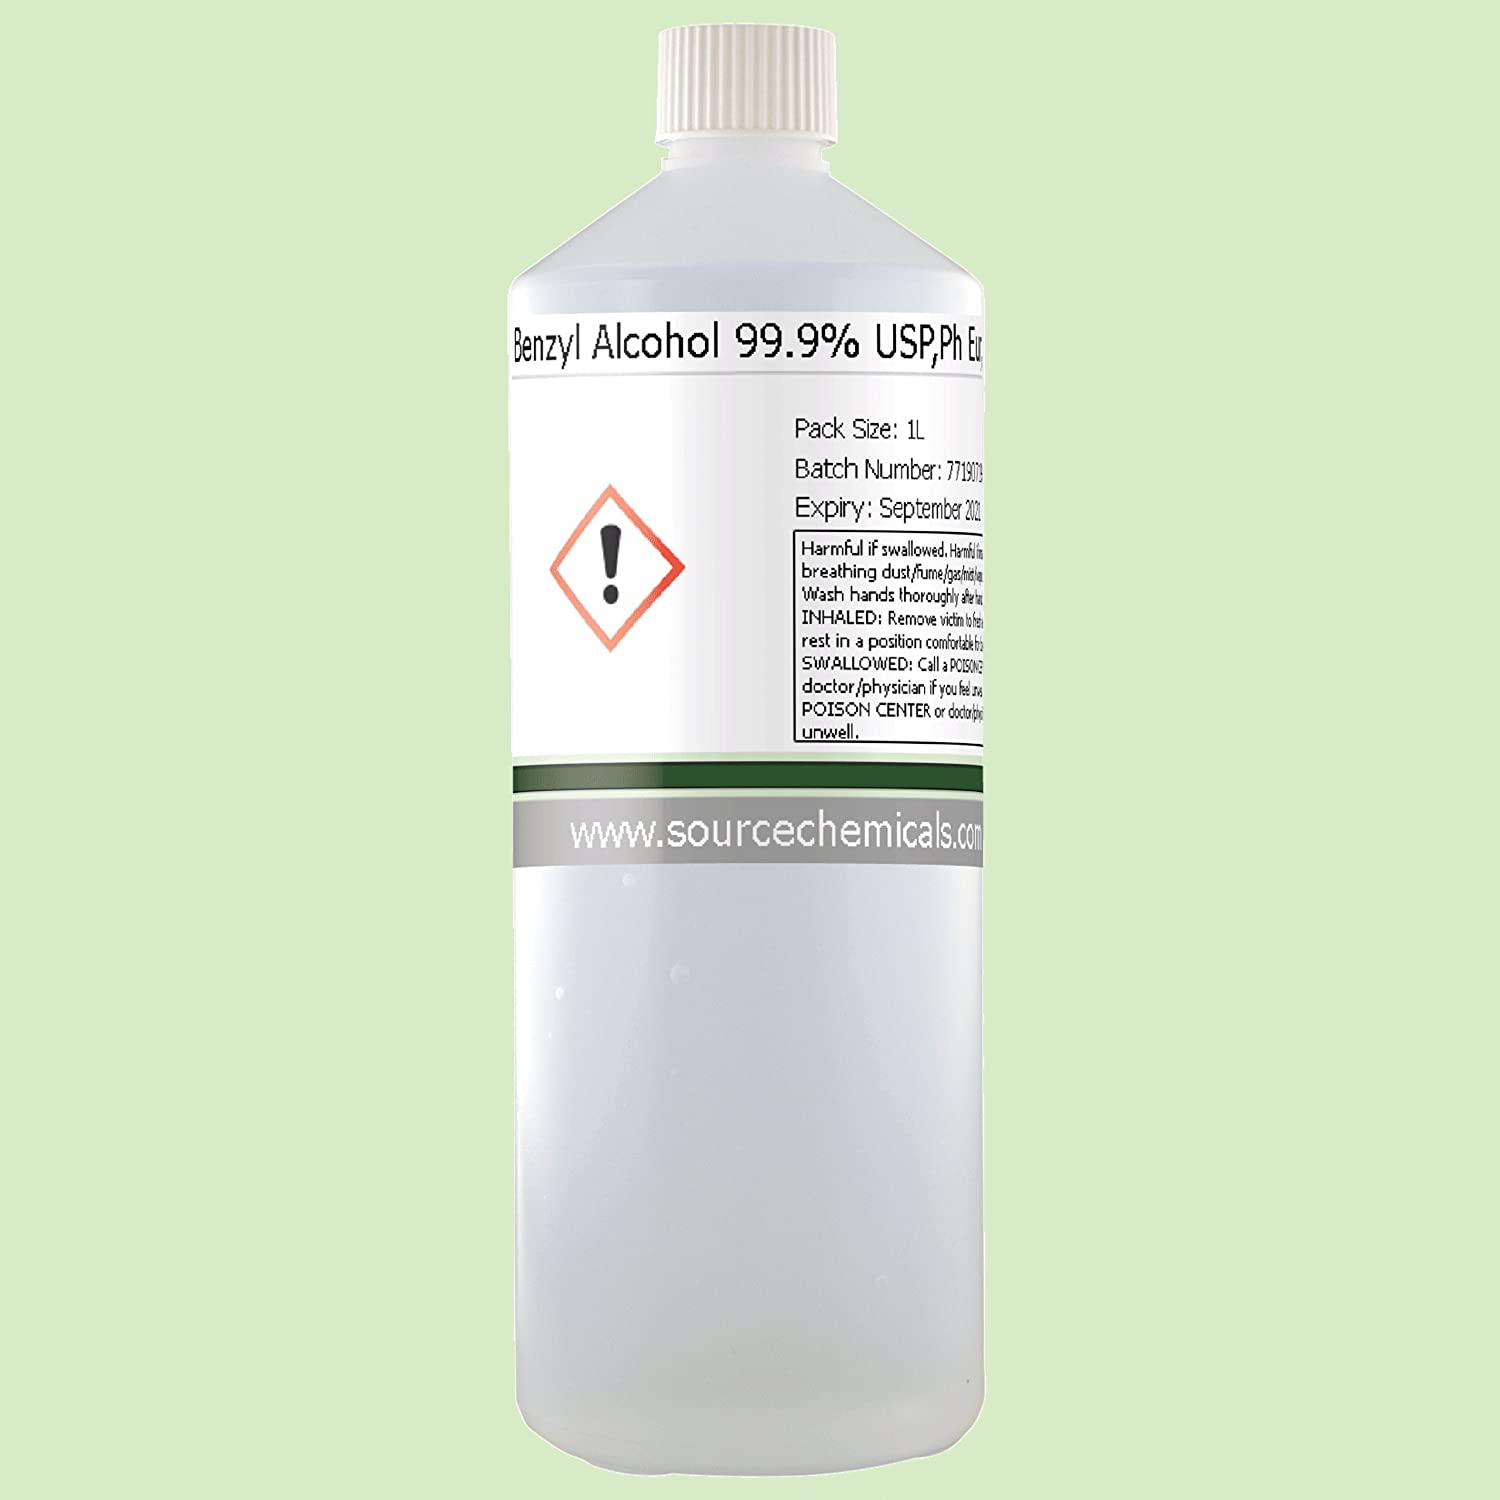 Benzyl Alcohol 99.9% USP, Ph Eur, BP, ACS 1 Litre (1L) Including Delivery Source Chemicals BENZYLALC-1L